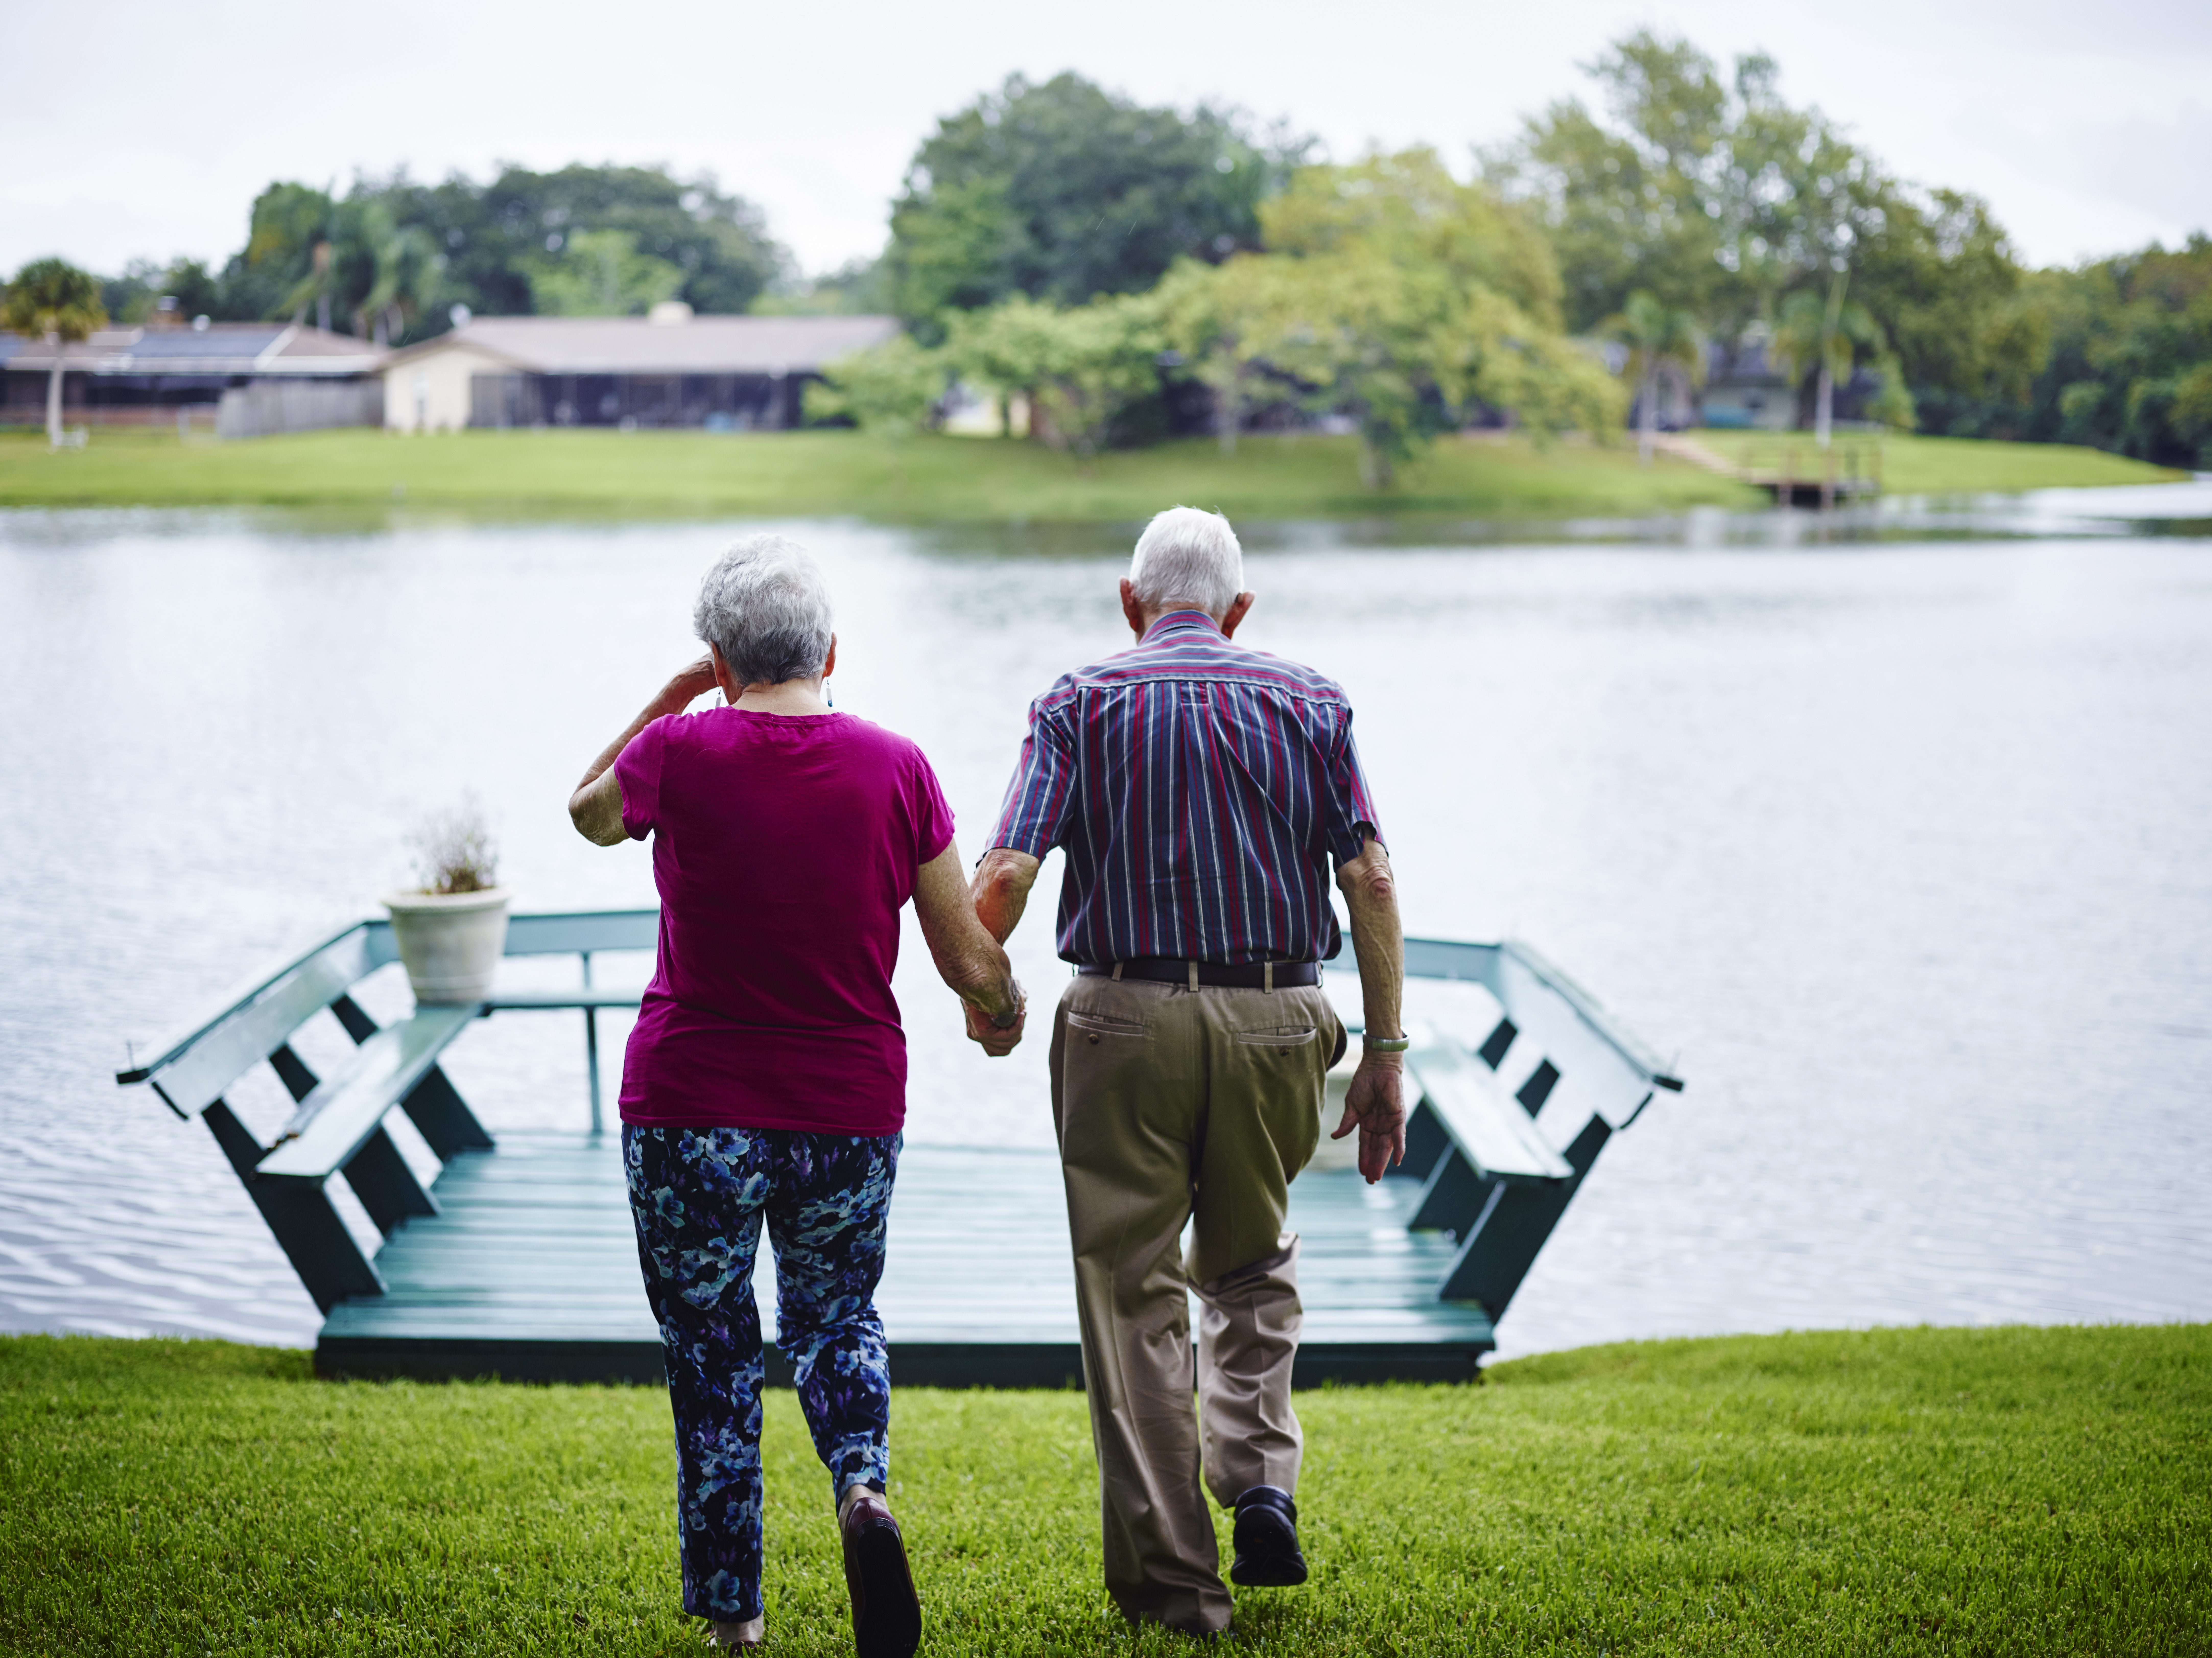 Dick Pell looks after his wife, Helen, at their Sarasota home.